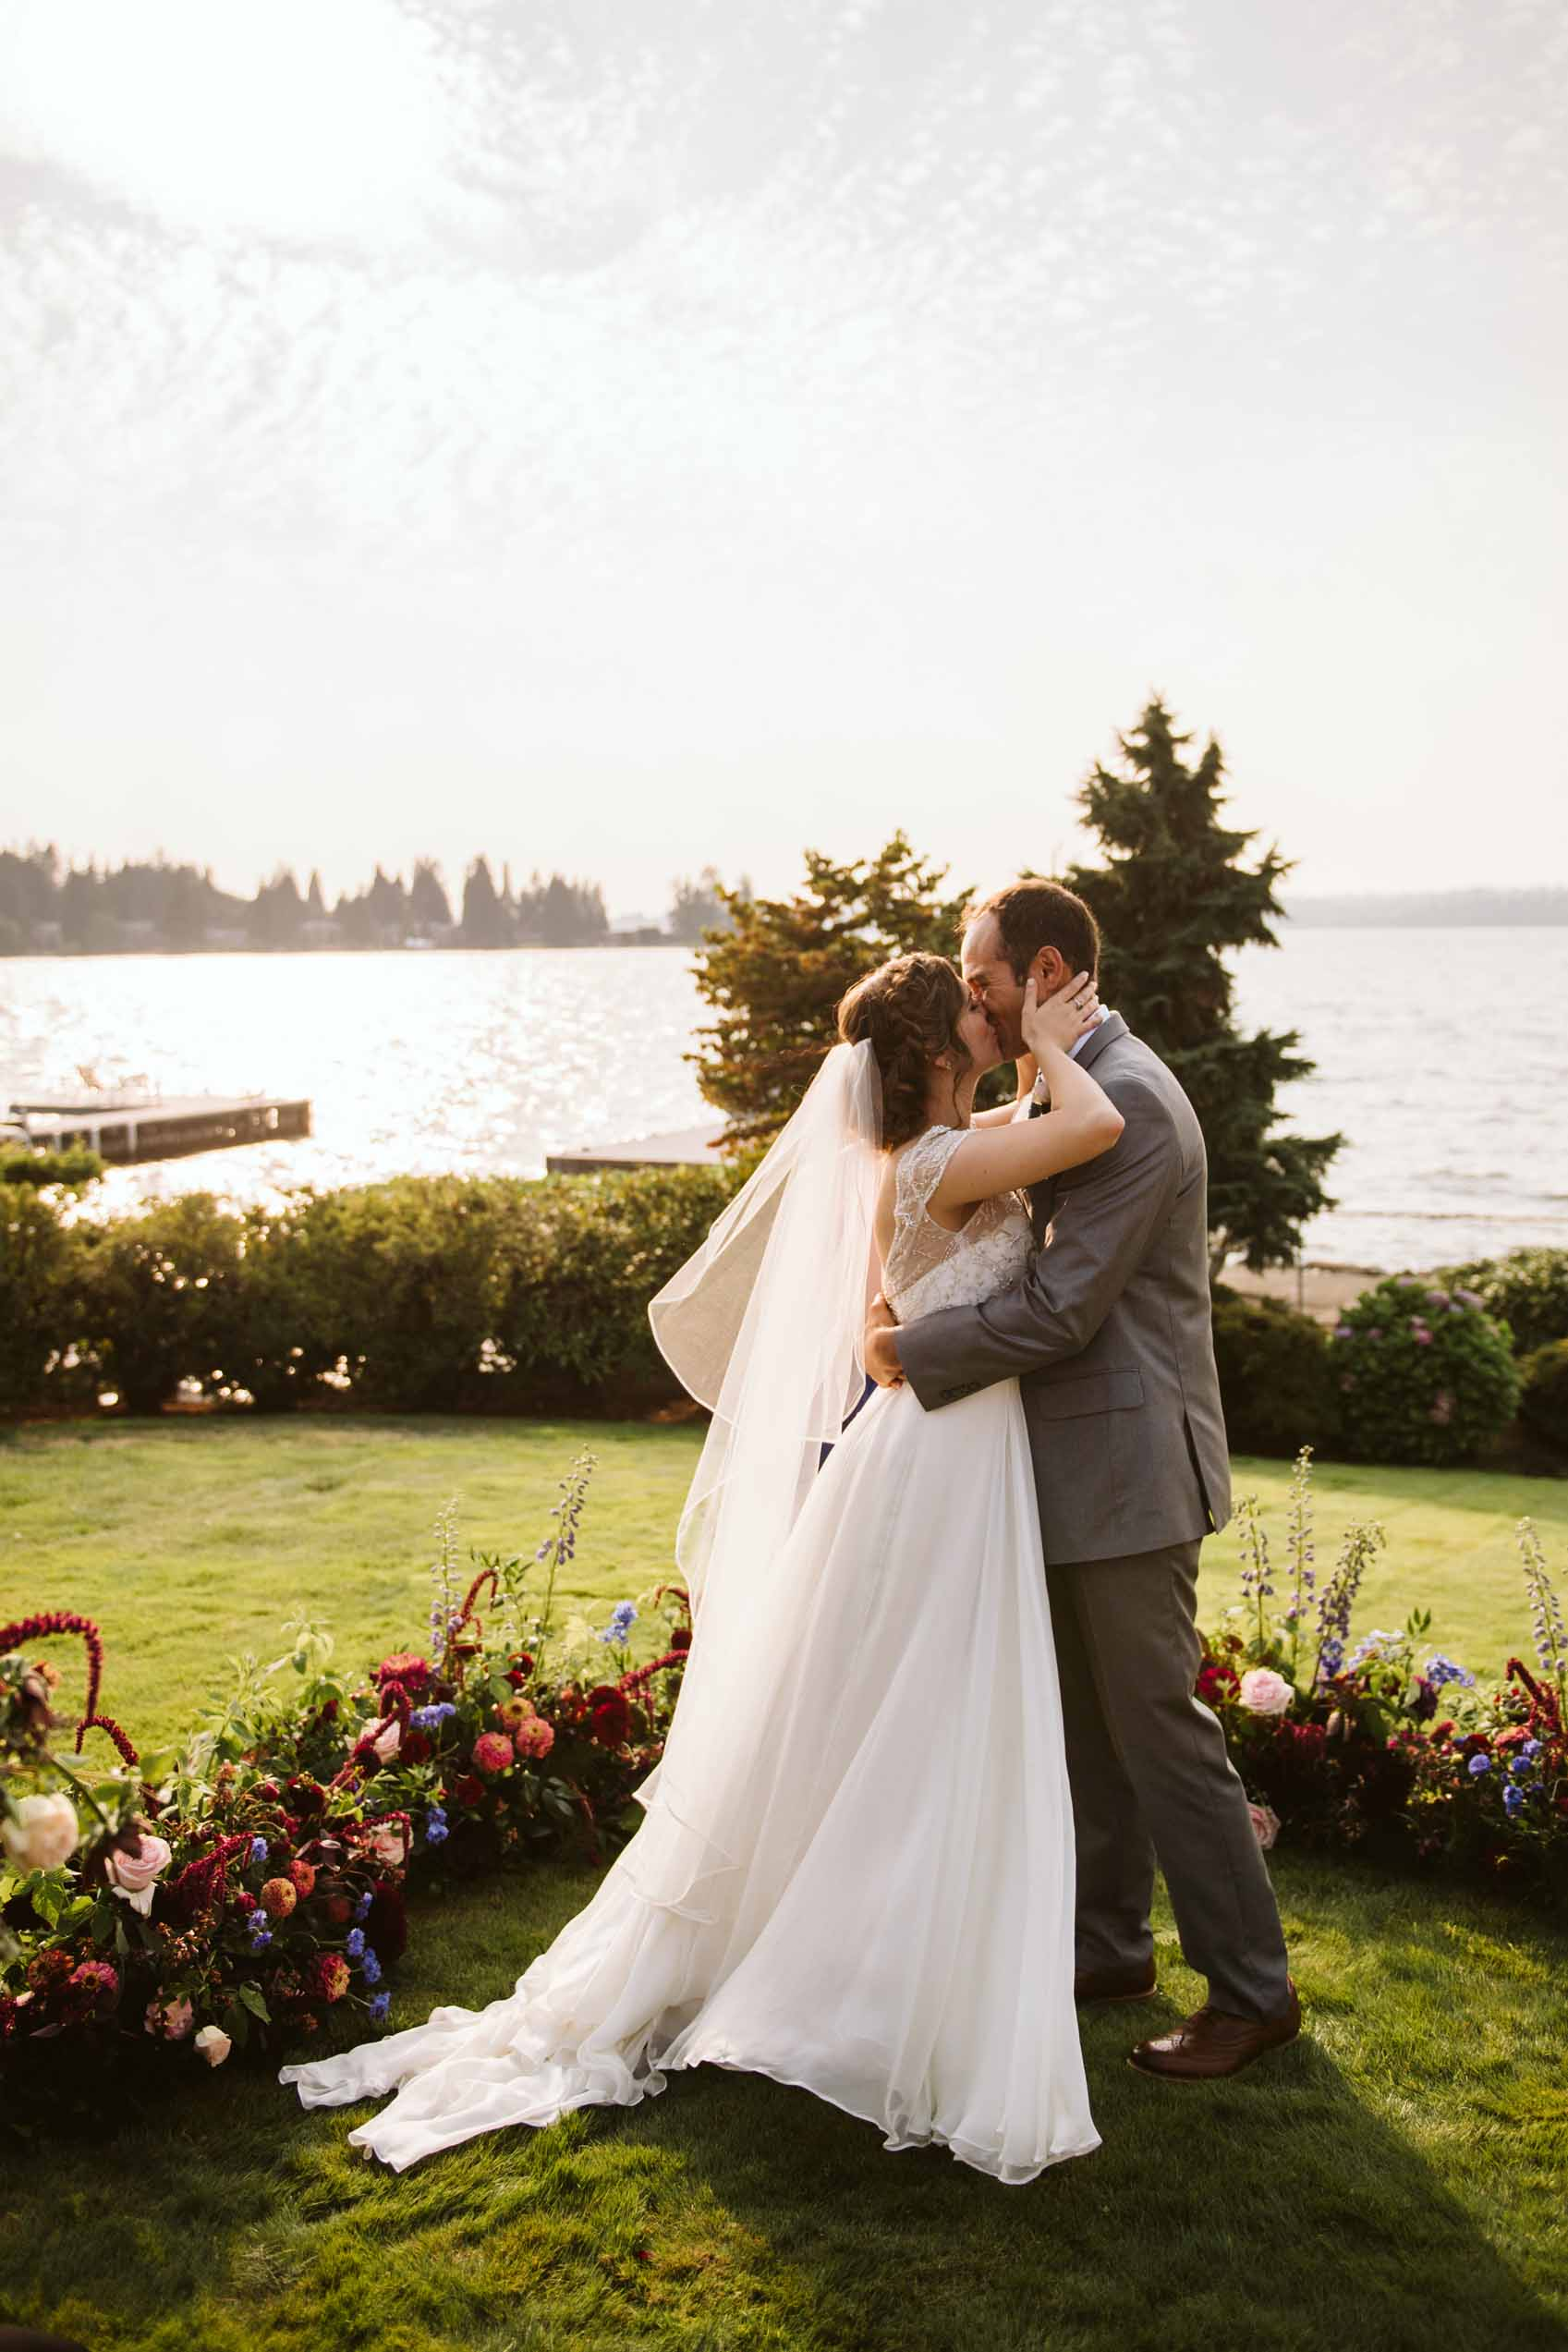 First kiss at intimate summer wedding ceremony in backyard | Flora Nova Design